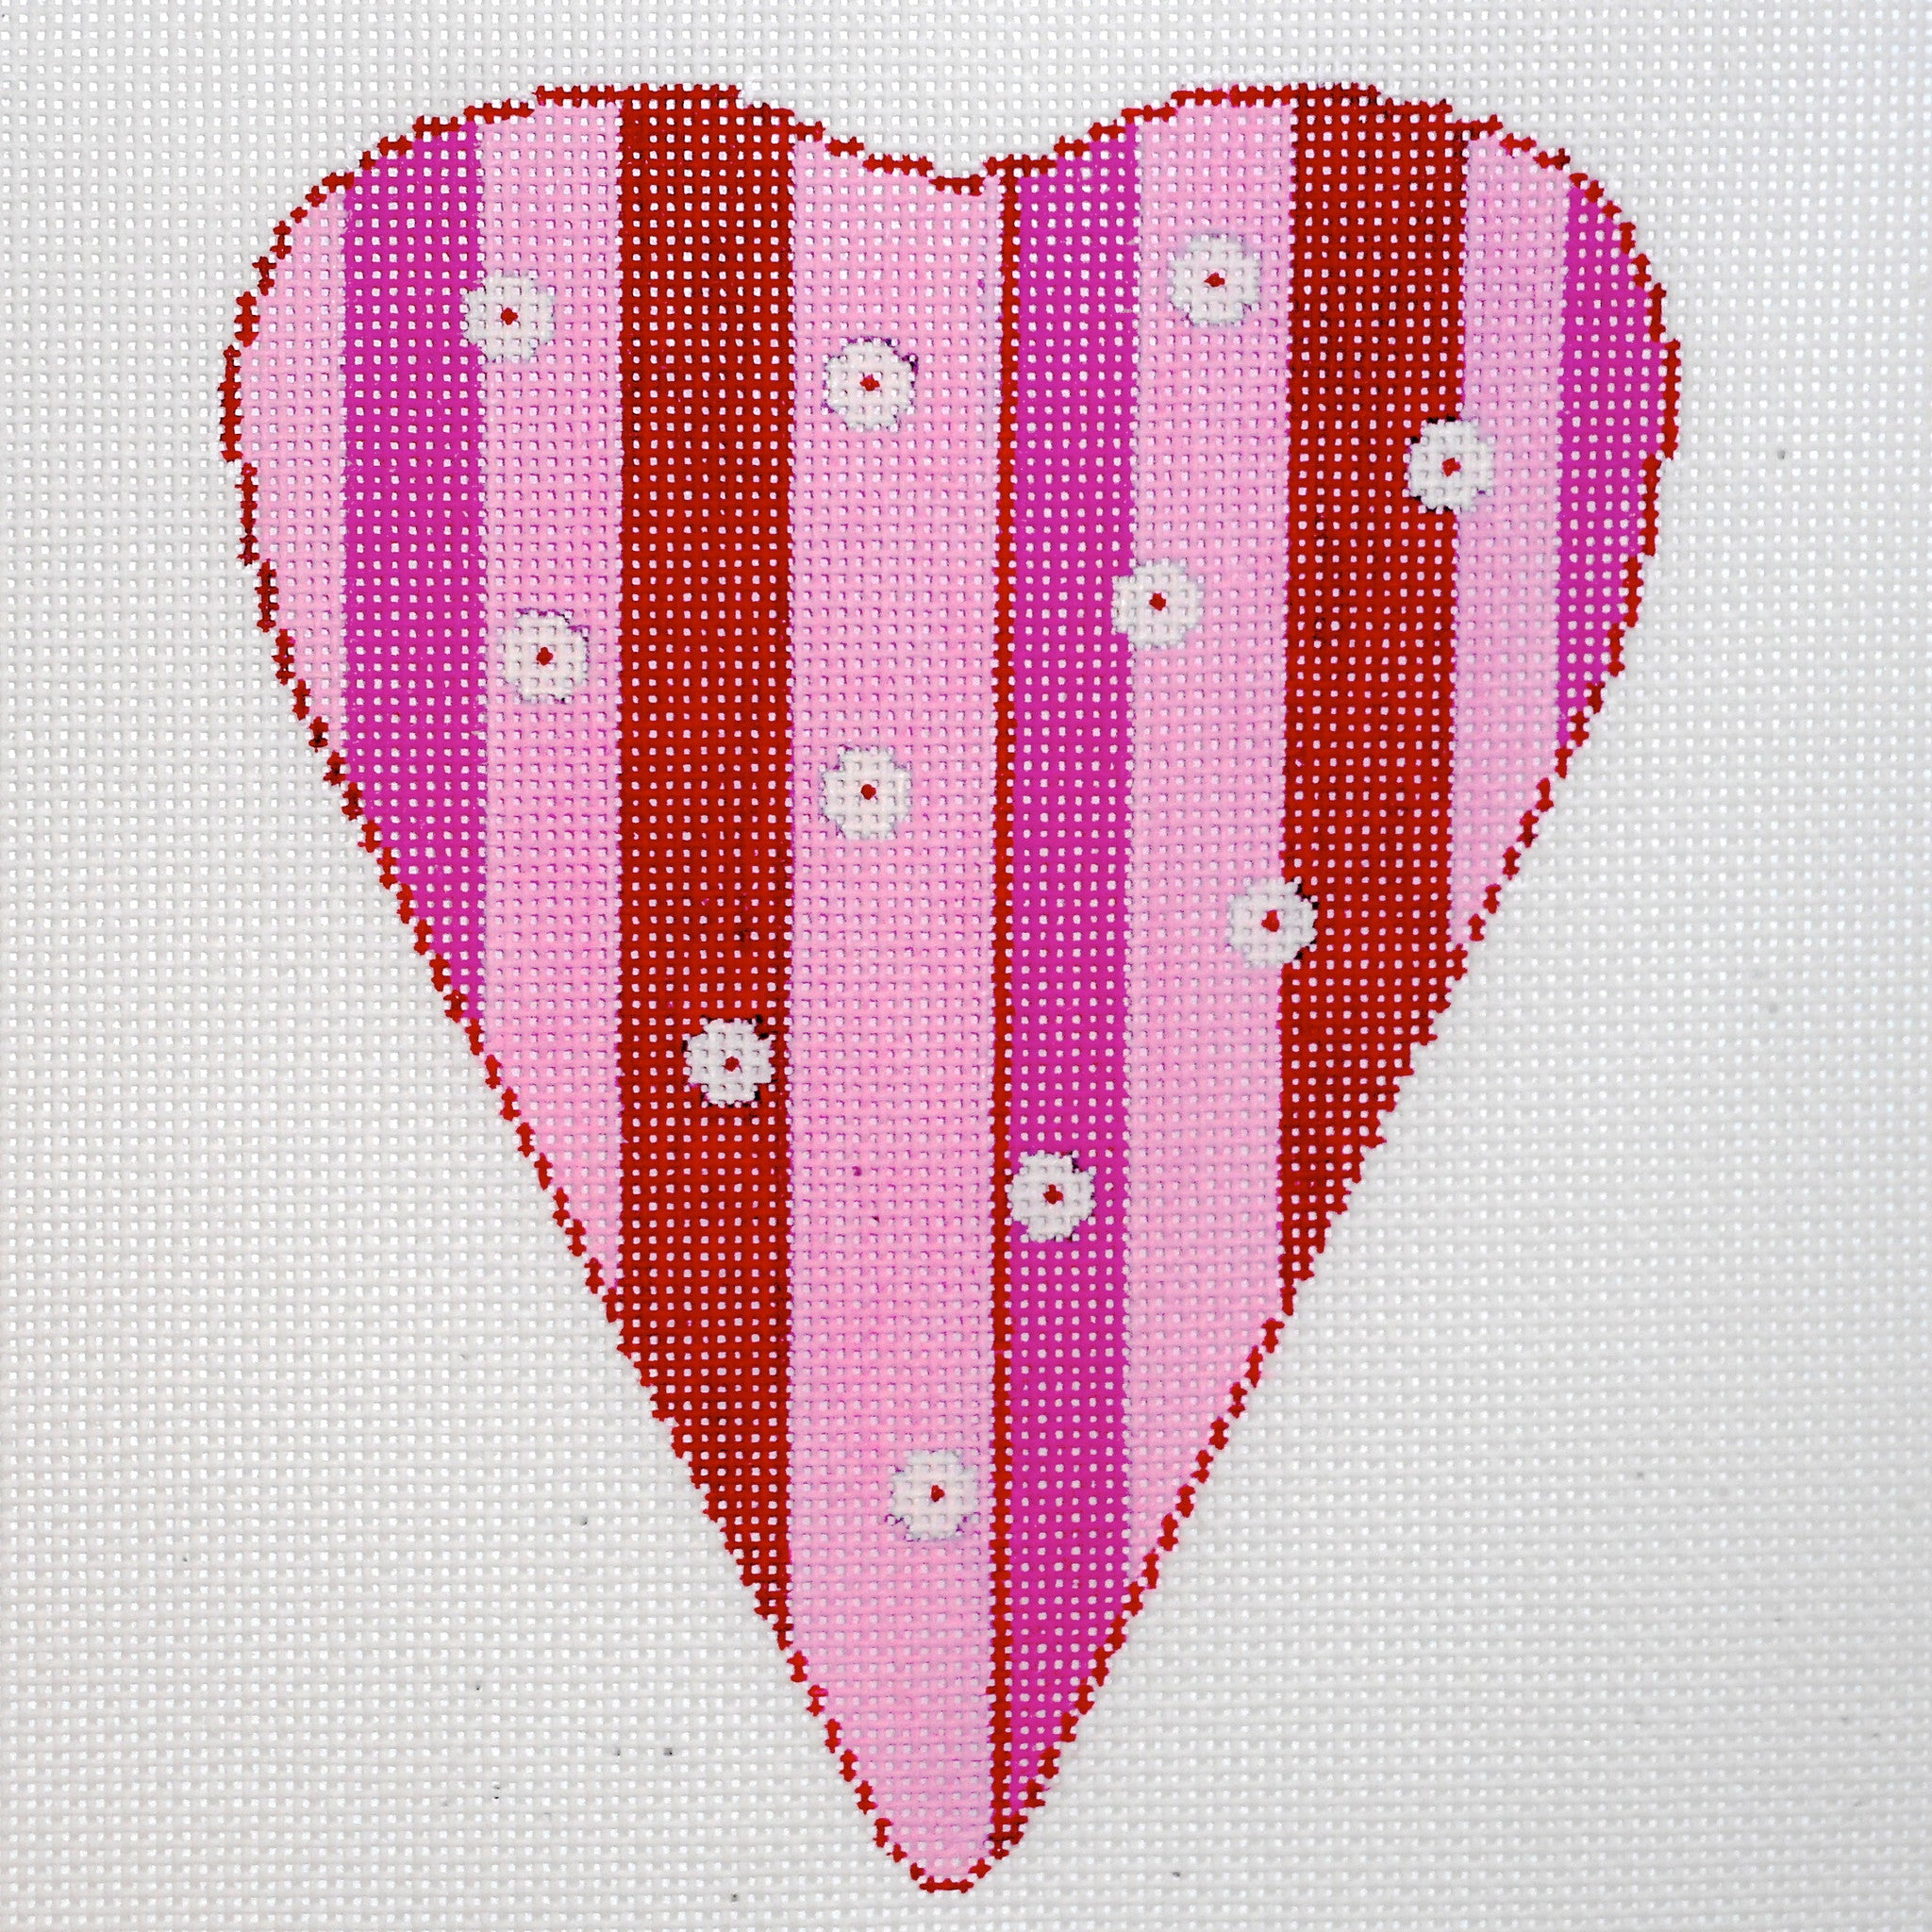 Heart with sequins